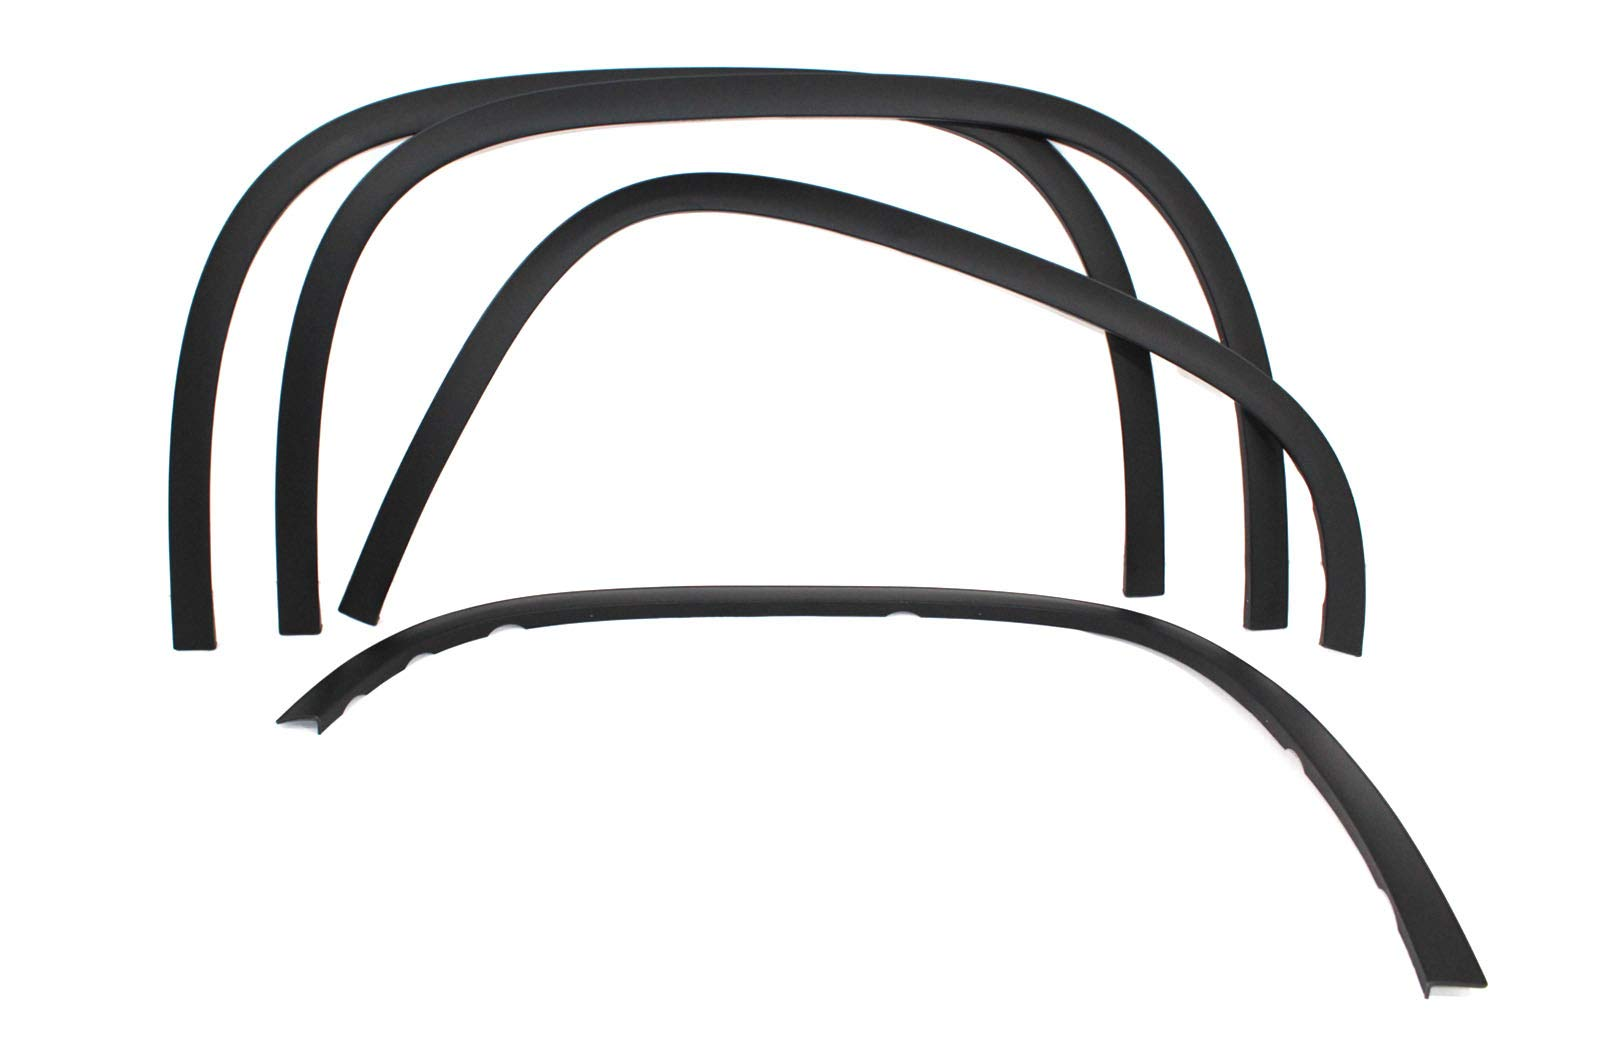 Carrichs Matte Black Fender Trim 2007-2013 GMC Sierra 1500 (Without Factory Flares)